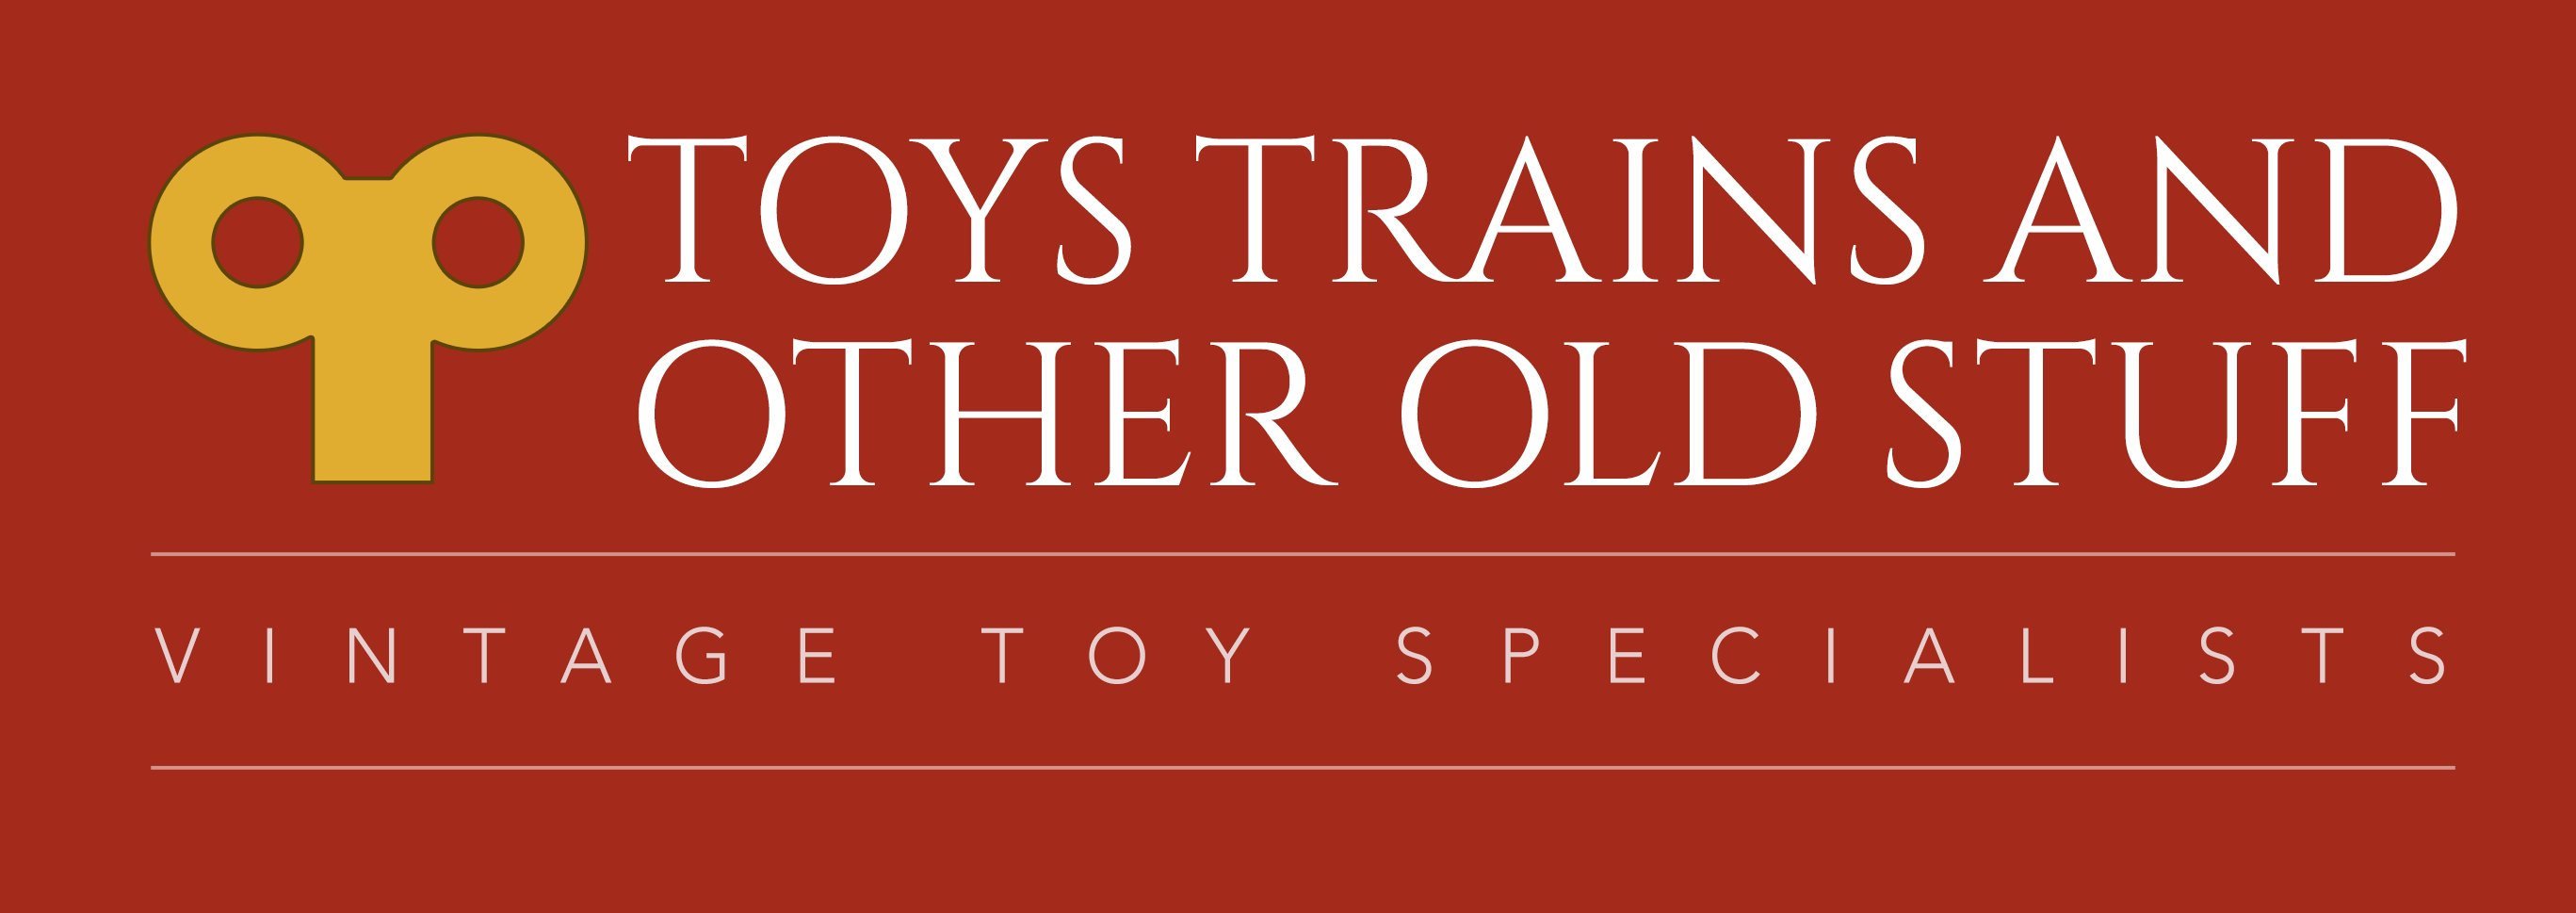 Toys Trains and Other Old Stuff LLC